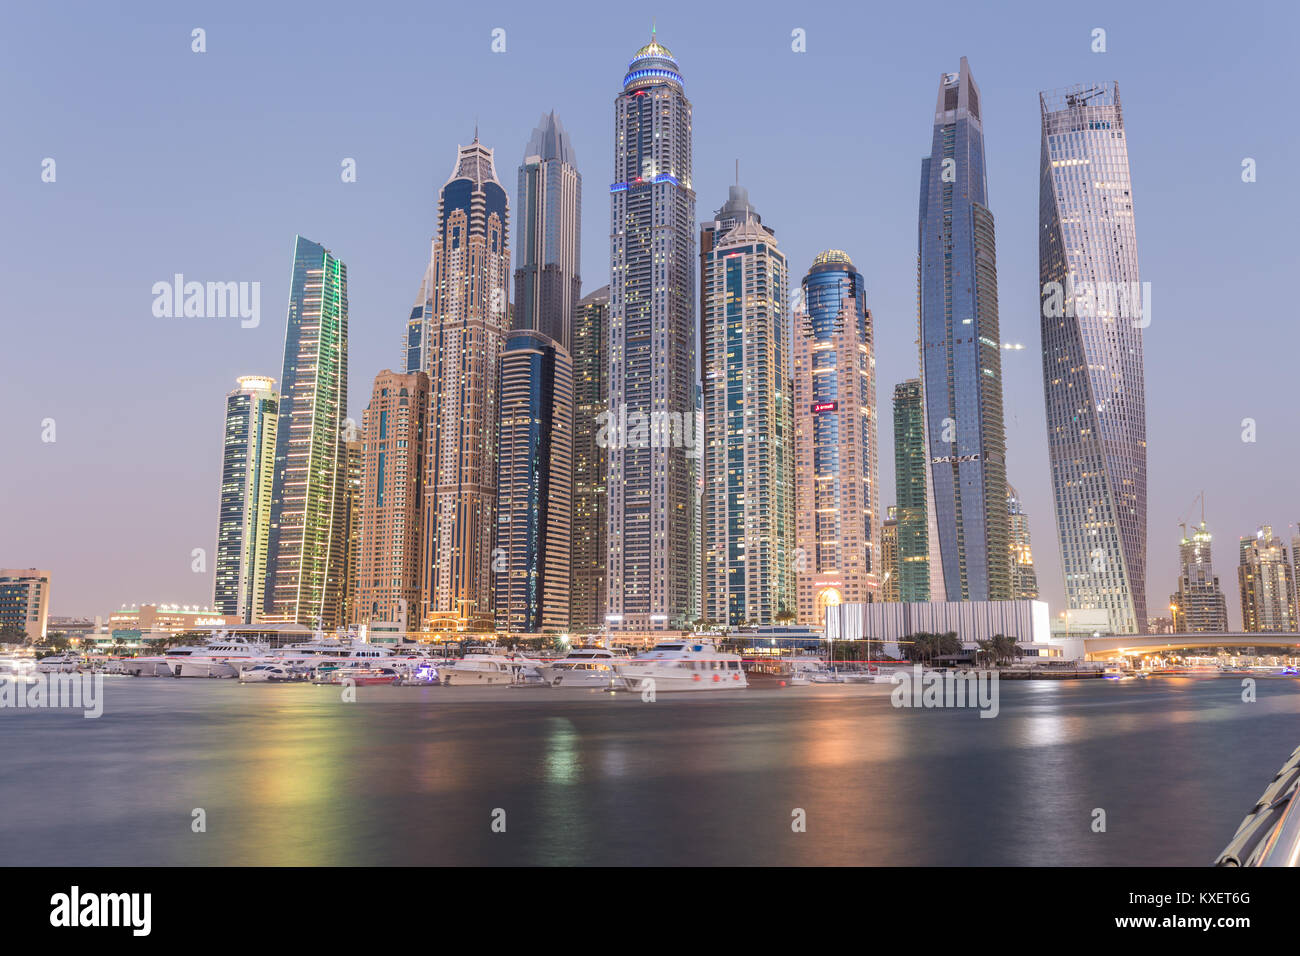 The futuristic skyline of skyscrapers in Dubai Marina, United Arab Emirates. - Stock Image